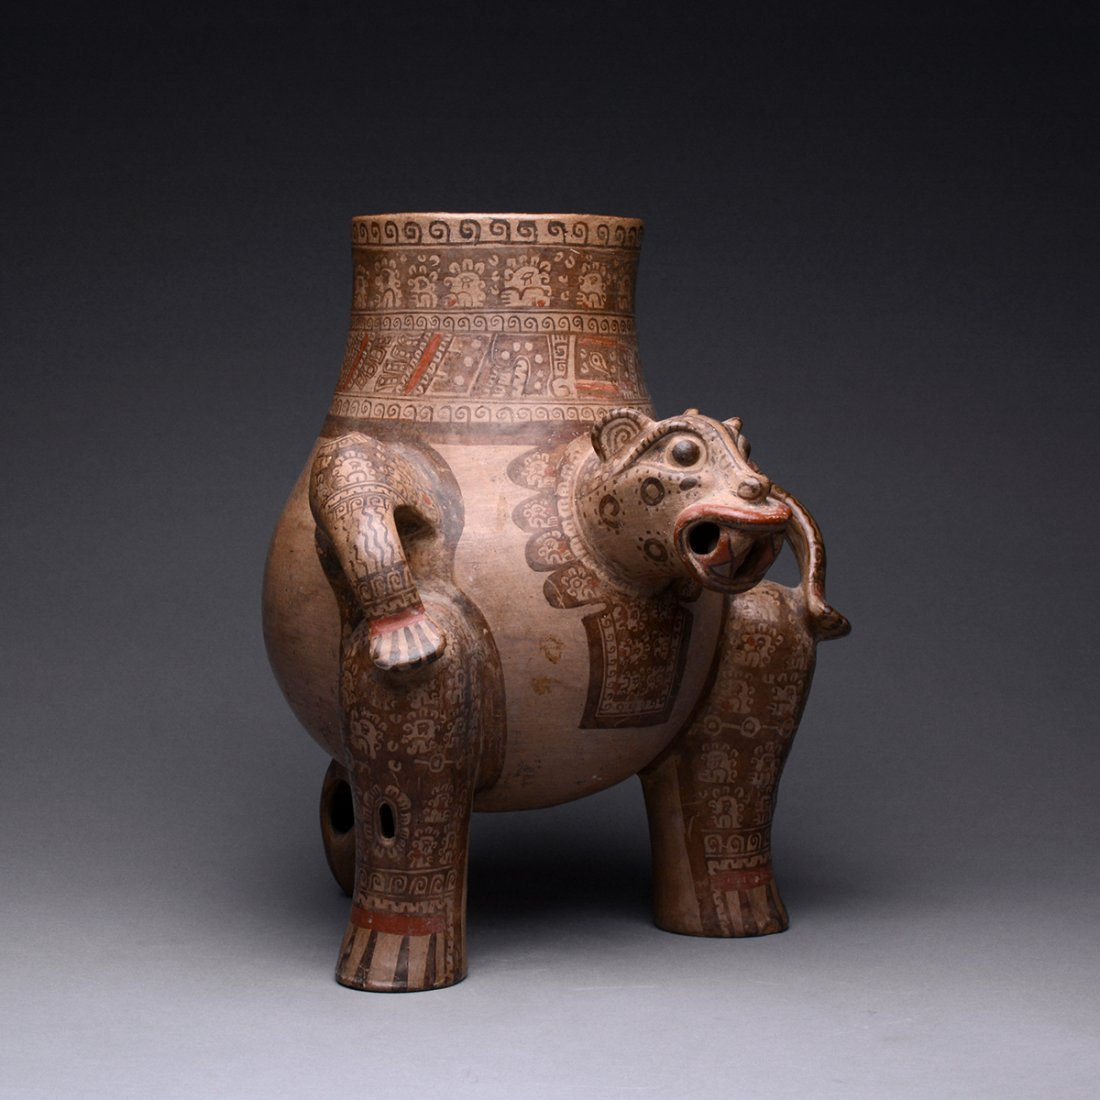 A Costa Rican Terracotta Jaguar Effigy Vessel - 2